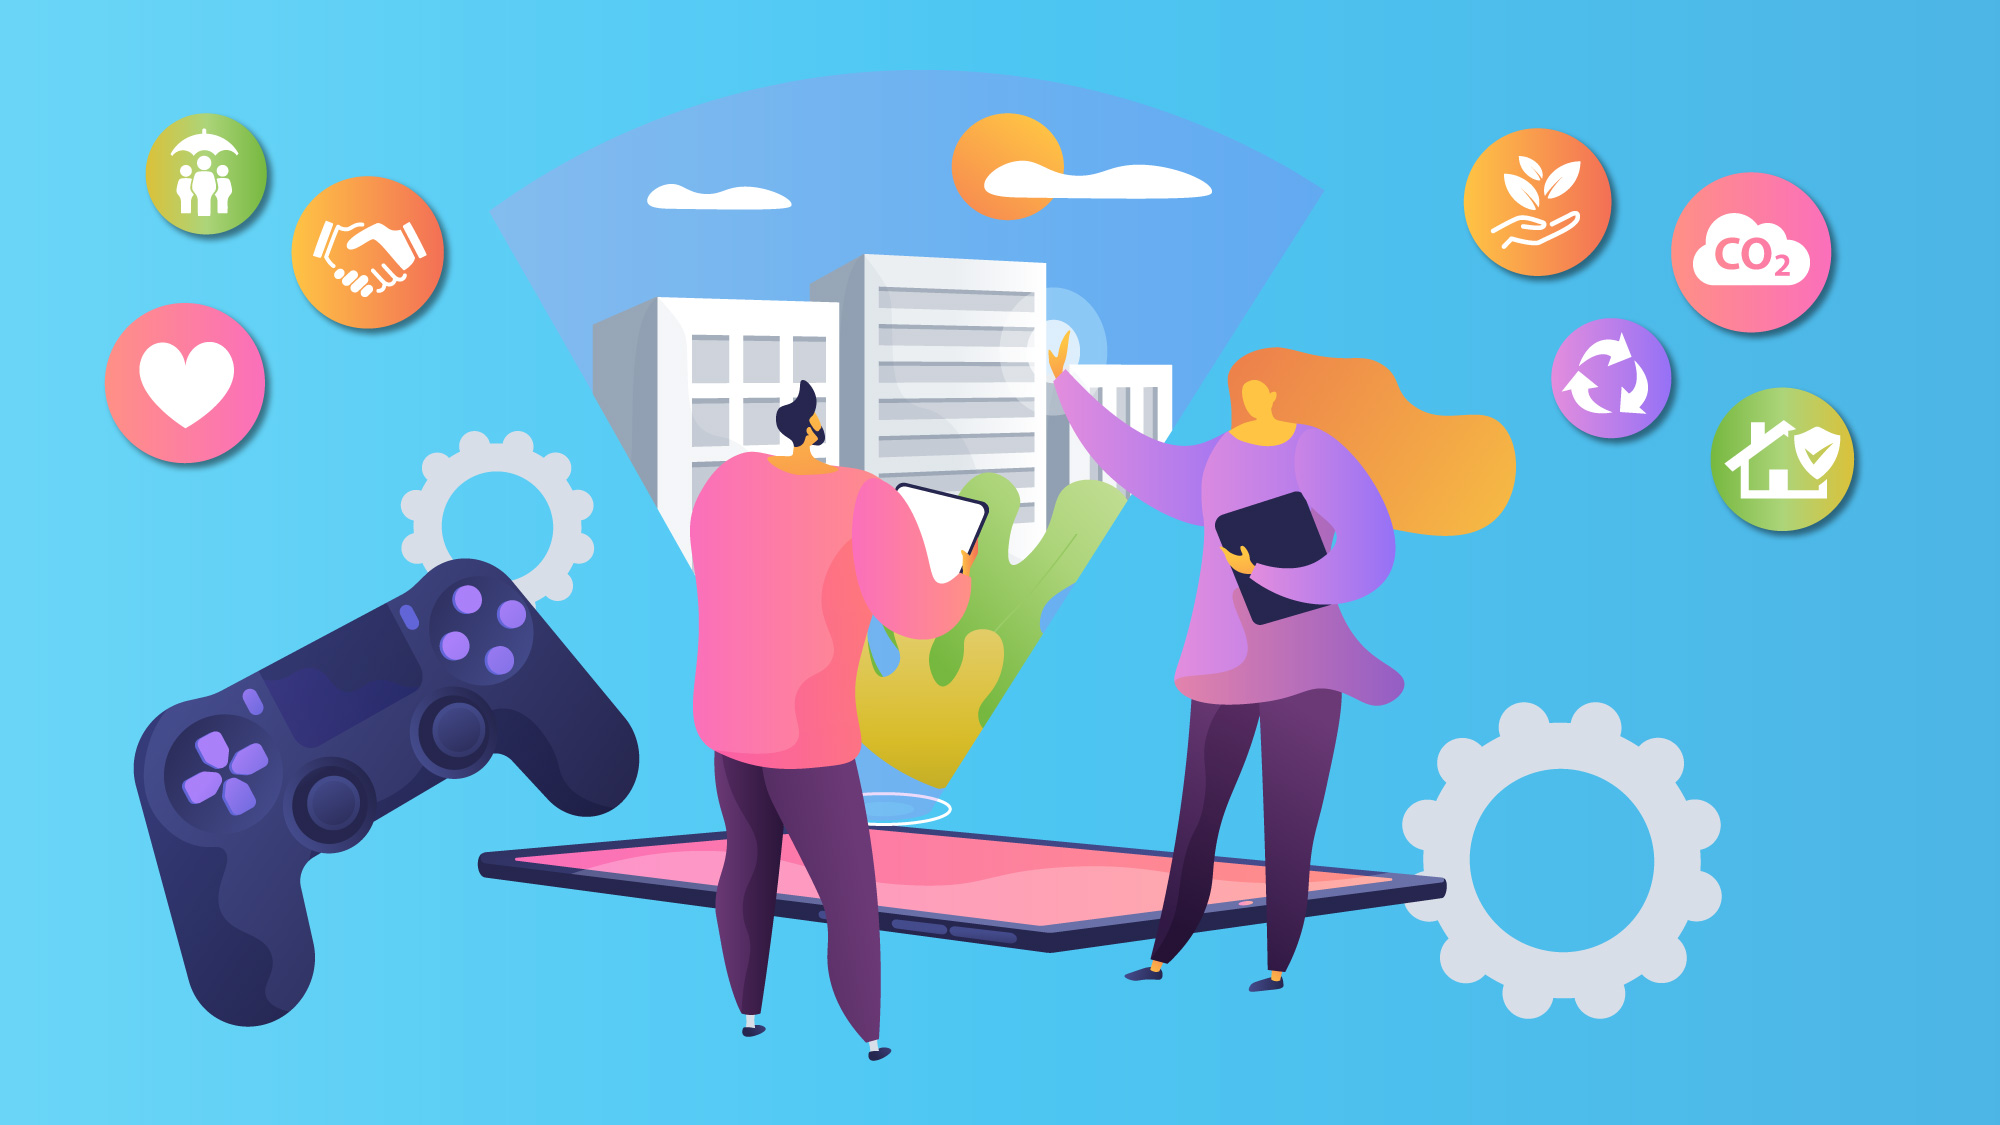 illustration depicting games with a purpose